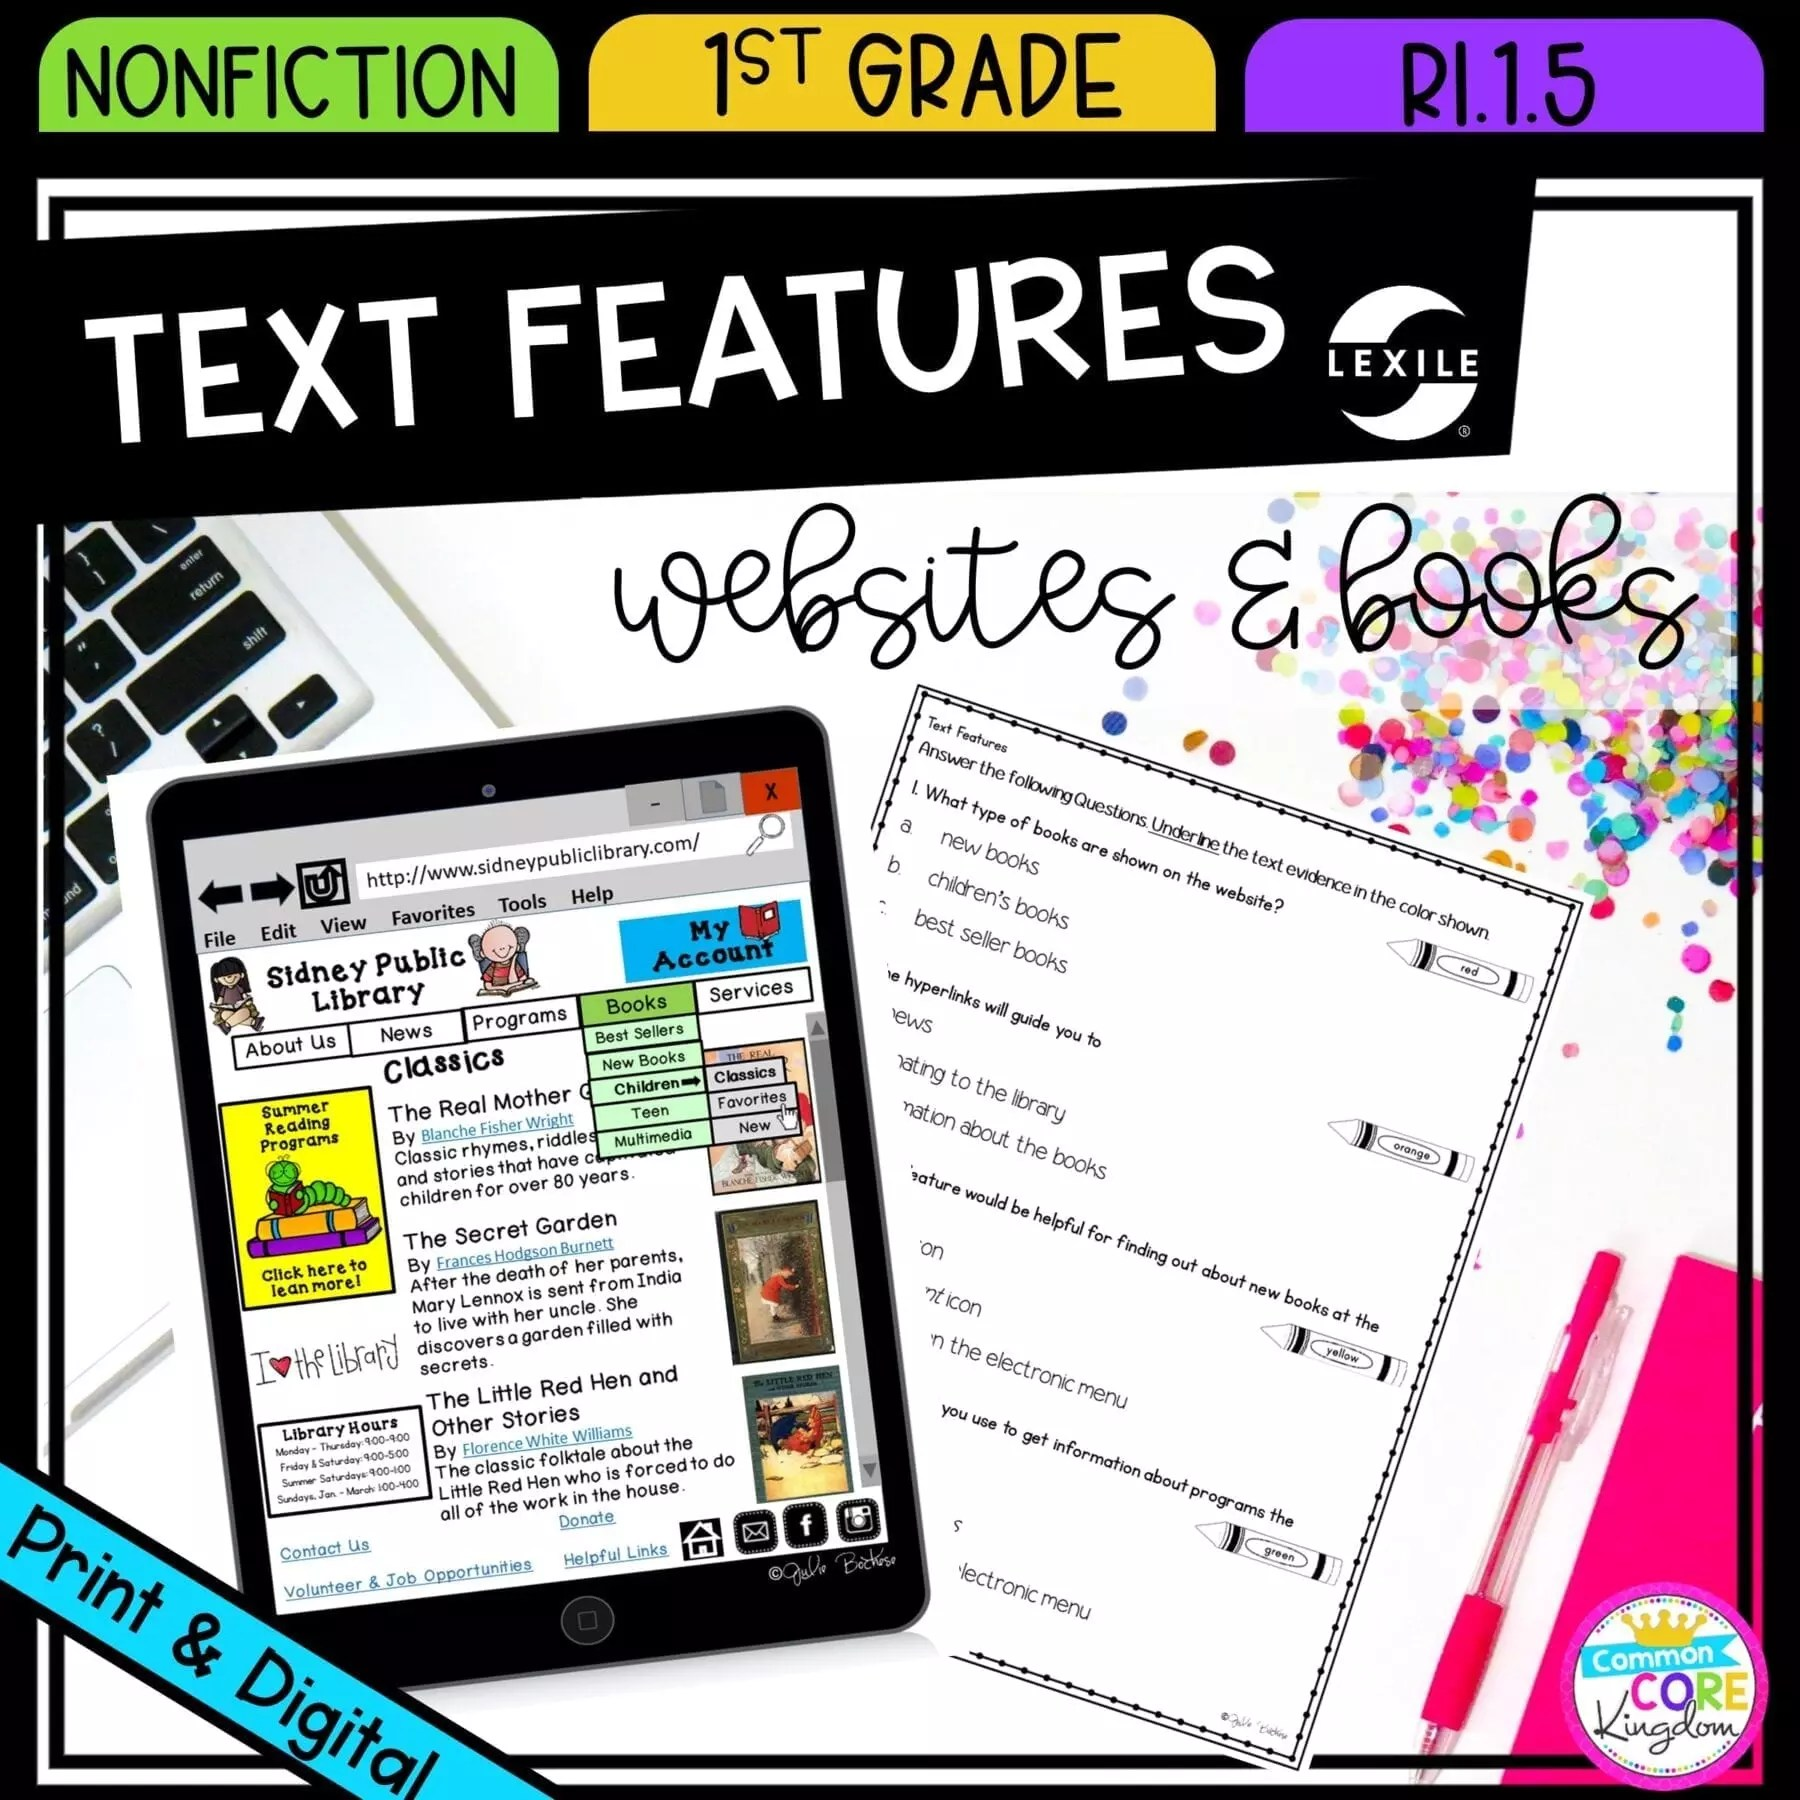 hight resolution of Nonfiction Text Features - 1st Grade RI.1.5 Printable \u0026 Digital Google  Slide Distance Learning Pack   Common Core Kingdom